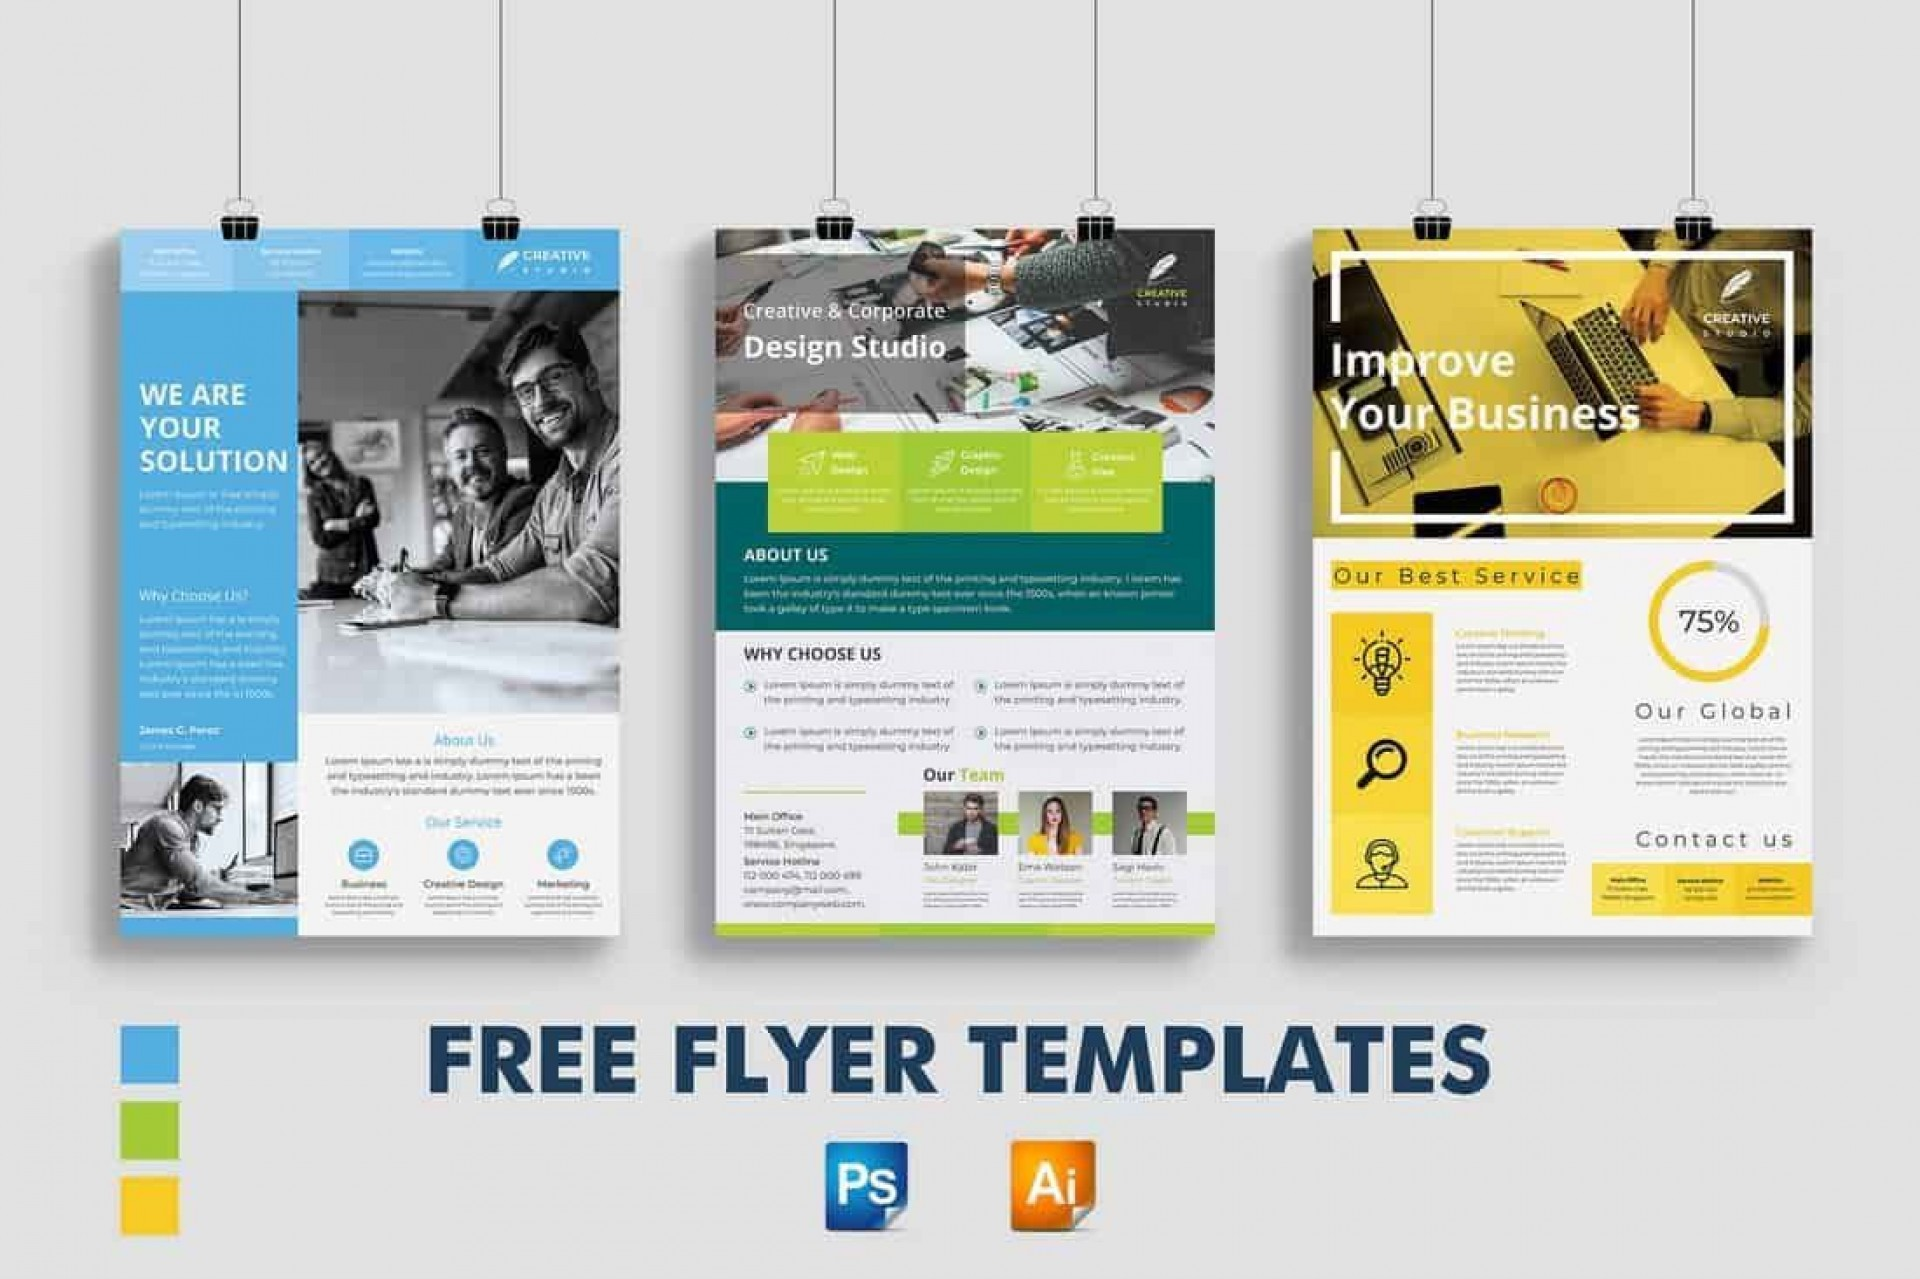 008 Astounding Template For Flyer Free Sample  Club Psd Download Busines1920